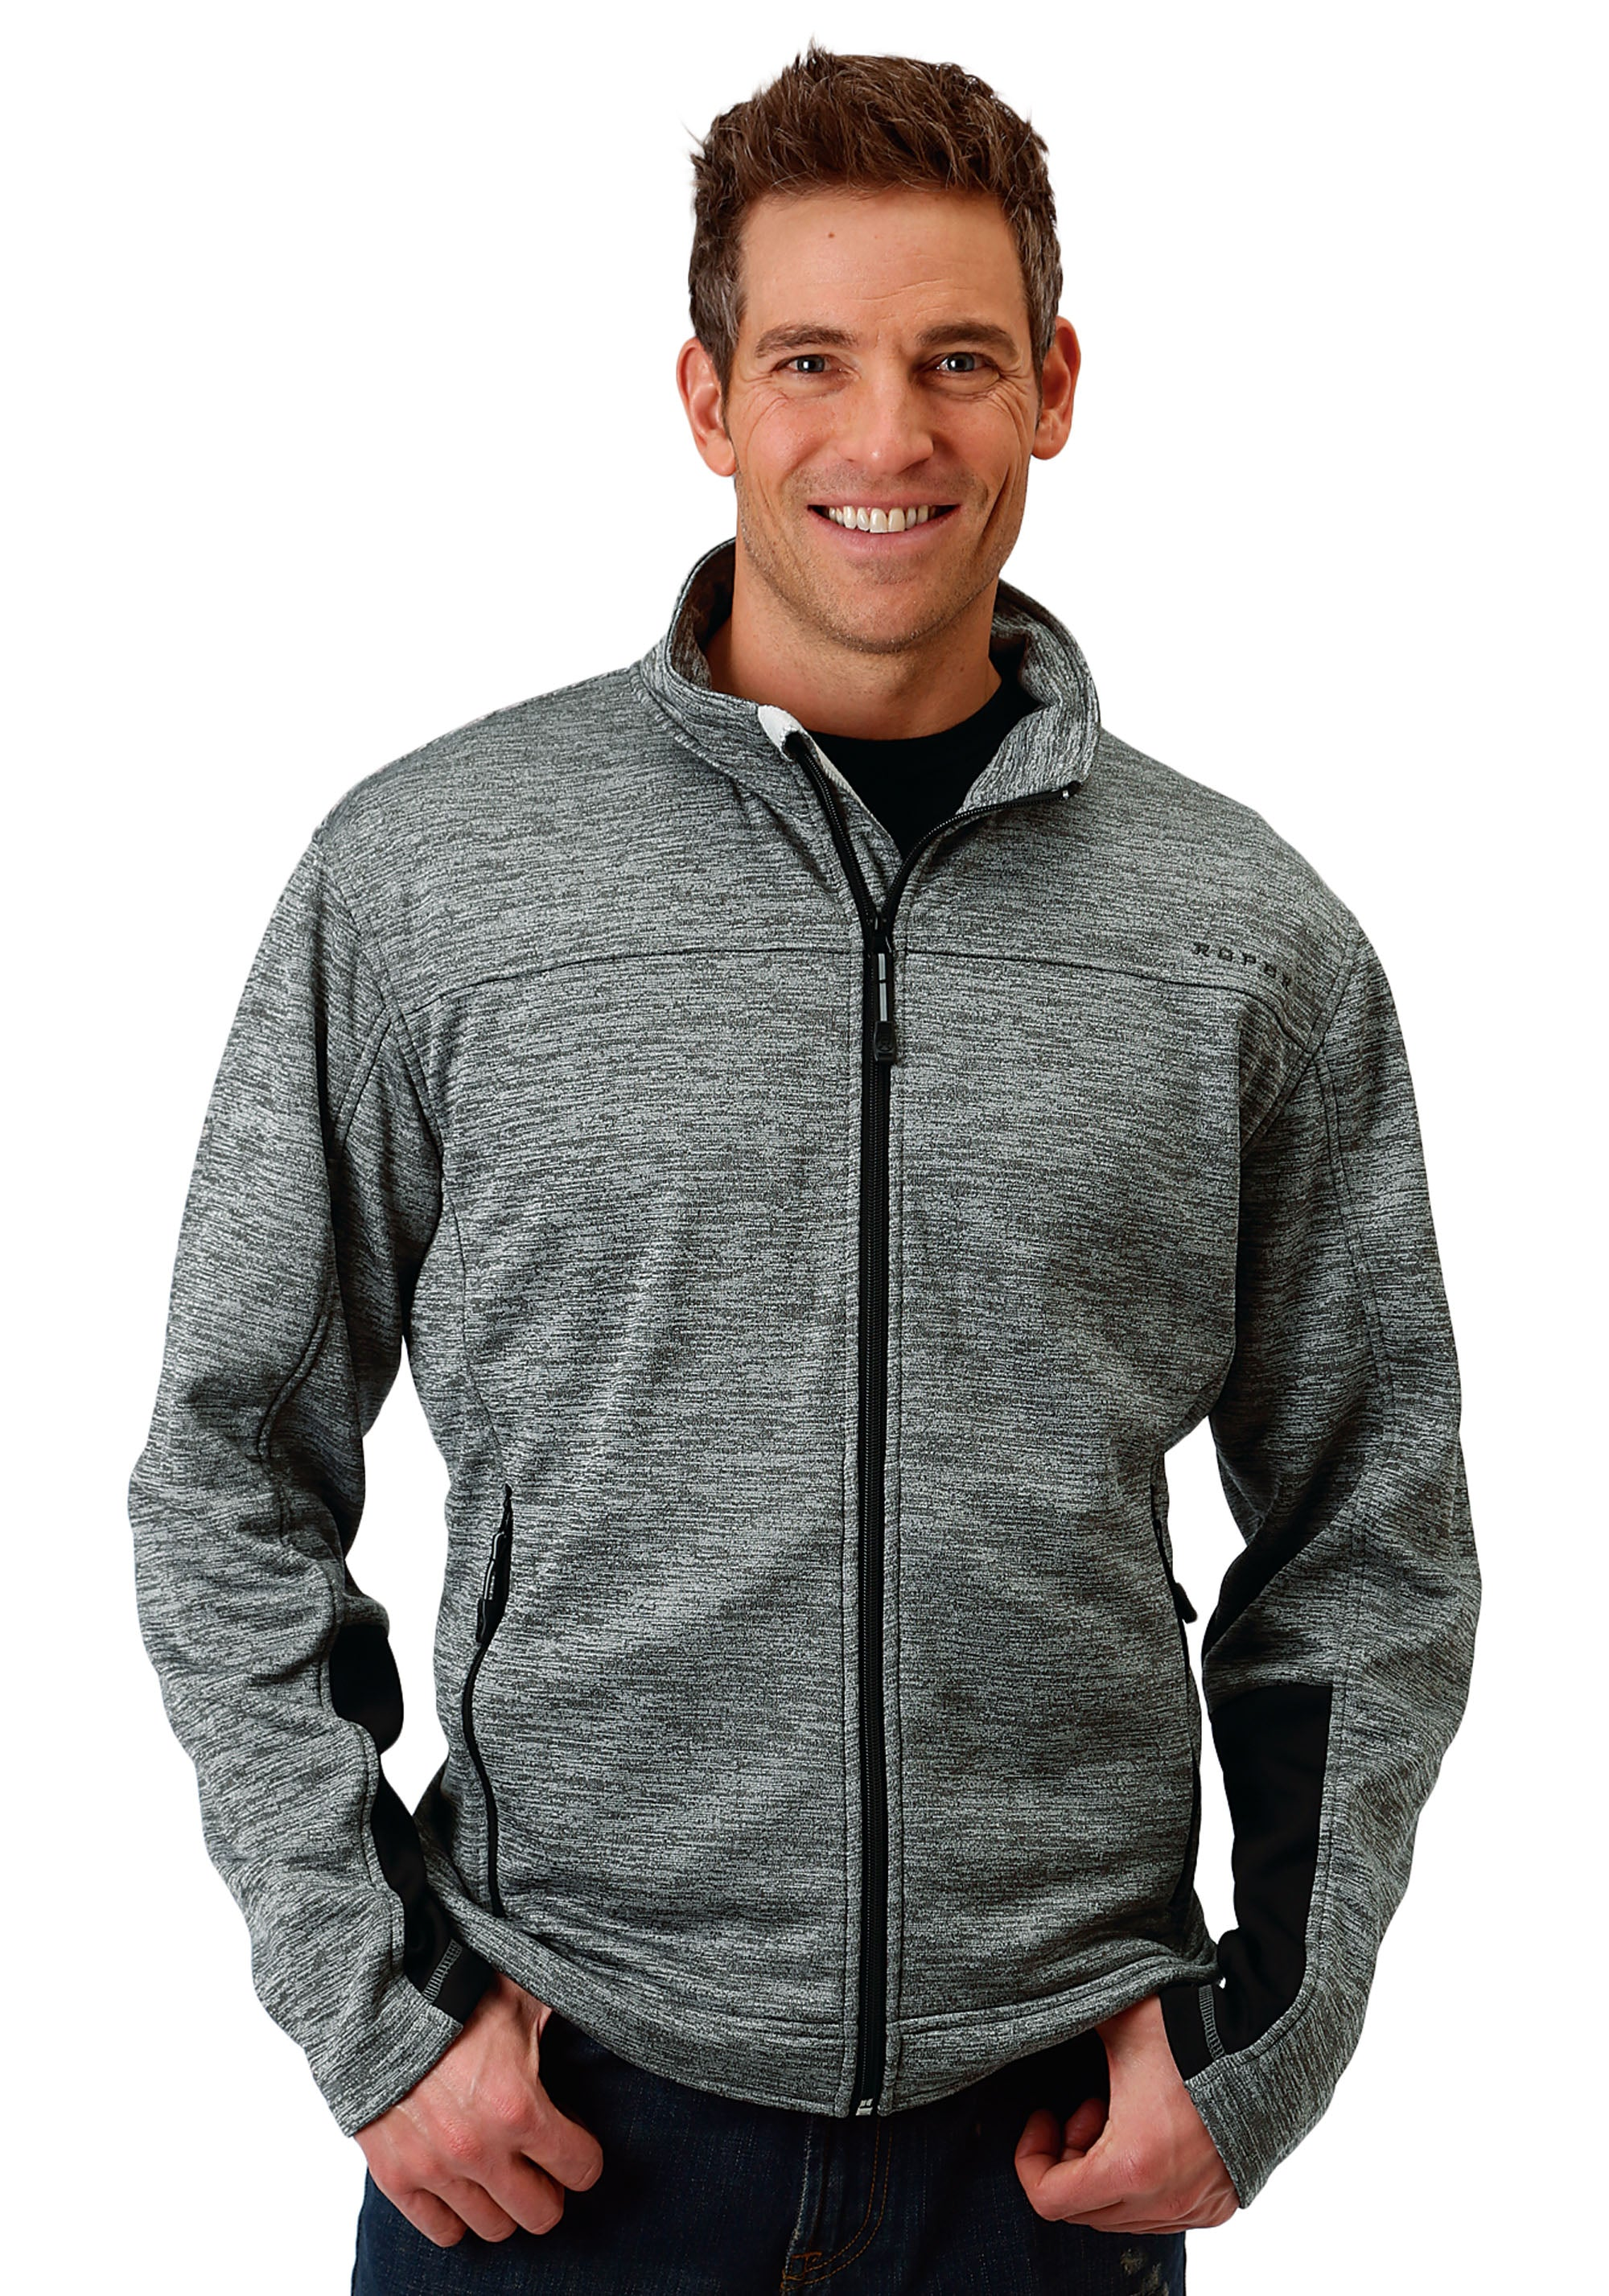 OUTERWEAR MENS GREY 1466 CATIONIC GREY BONDED FLEECE JCKT BONDED GROUP